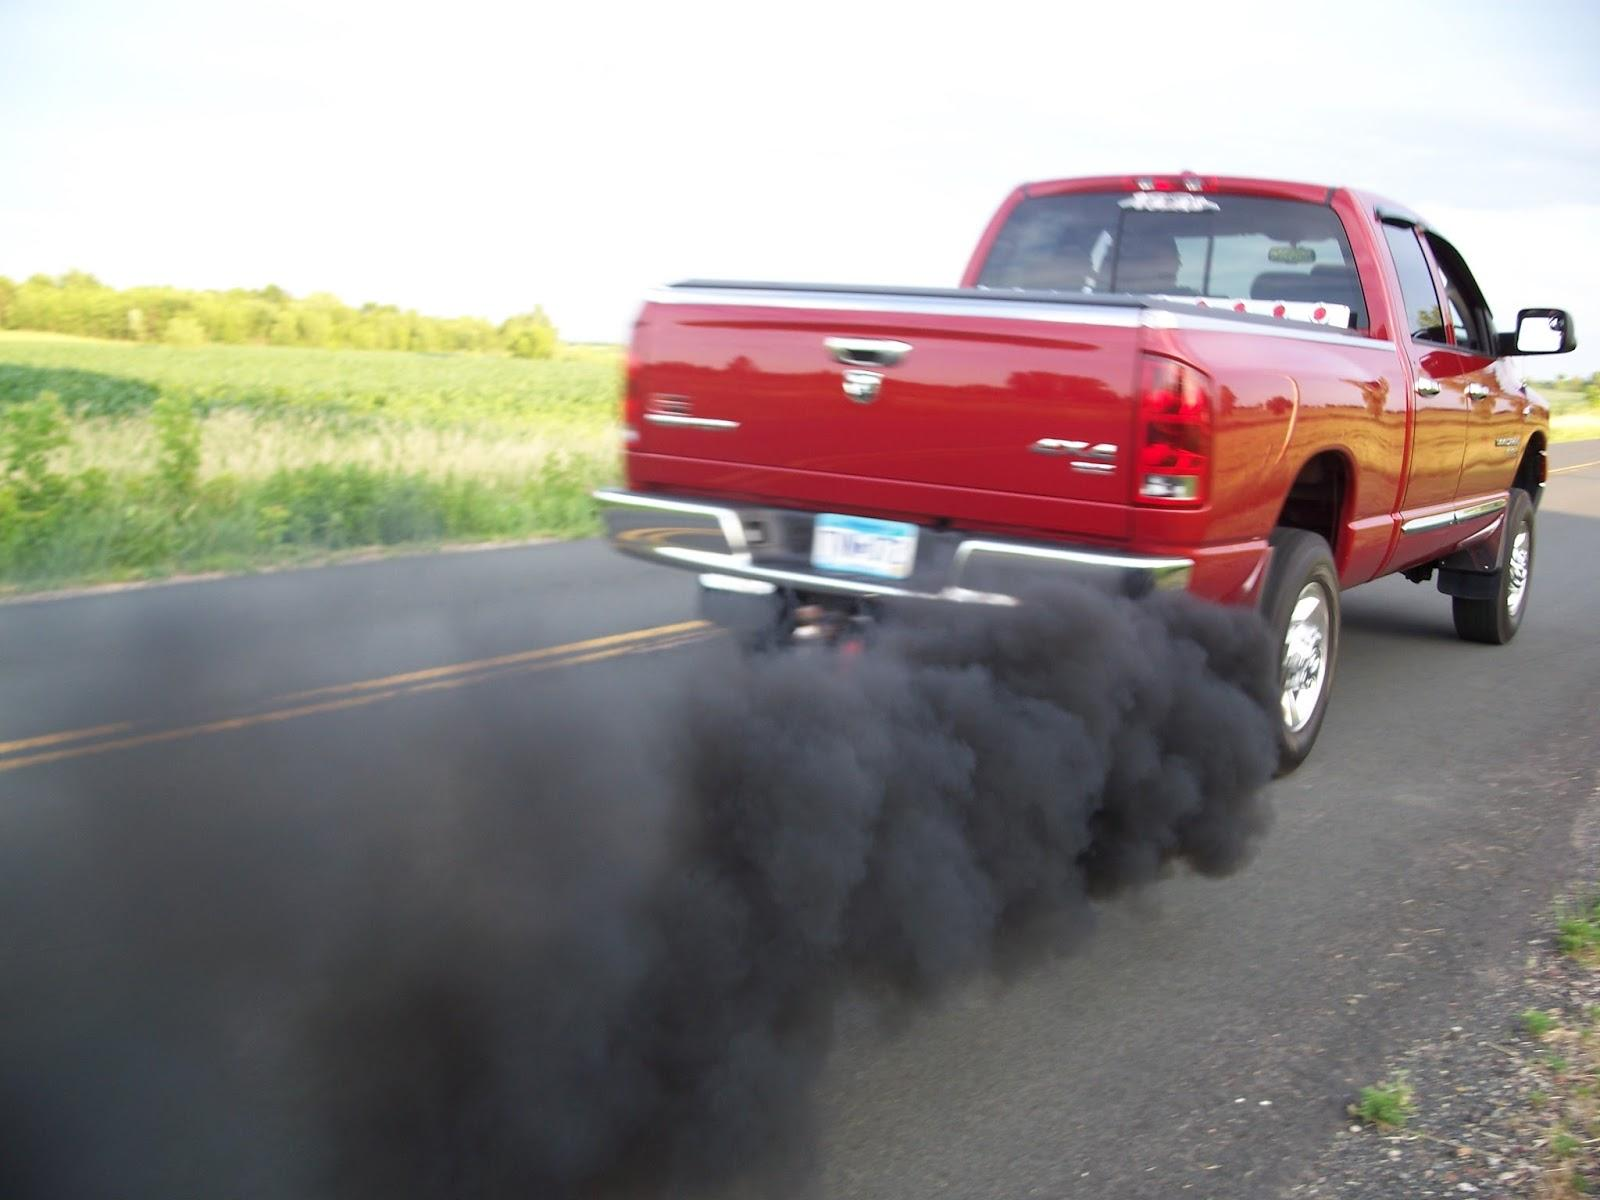 Engine Exhaling Black Smoke